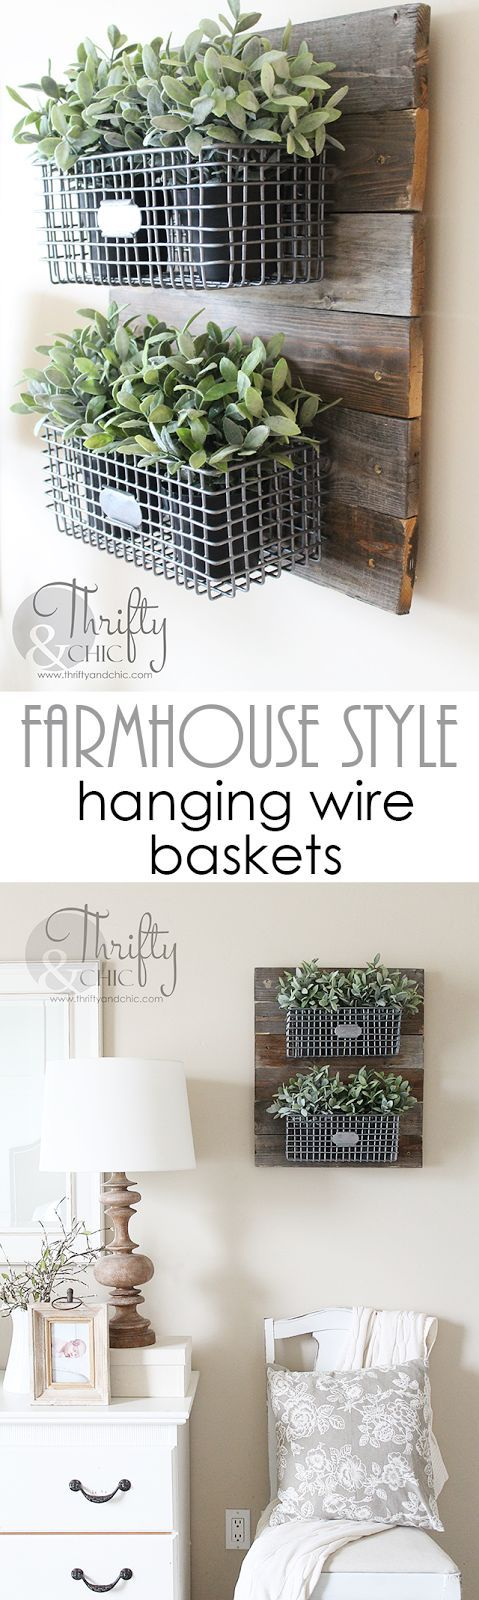 Hanging Photos On Wire best 25+ wire basket decor ideas on pinterest | blanket storage